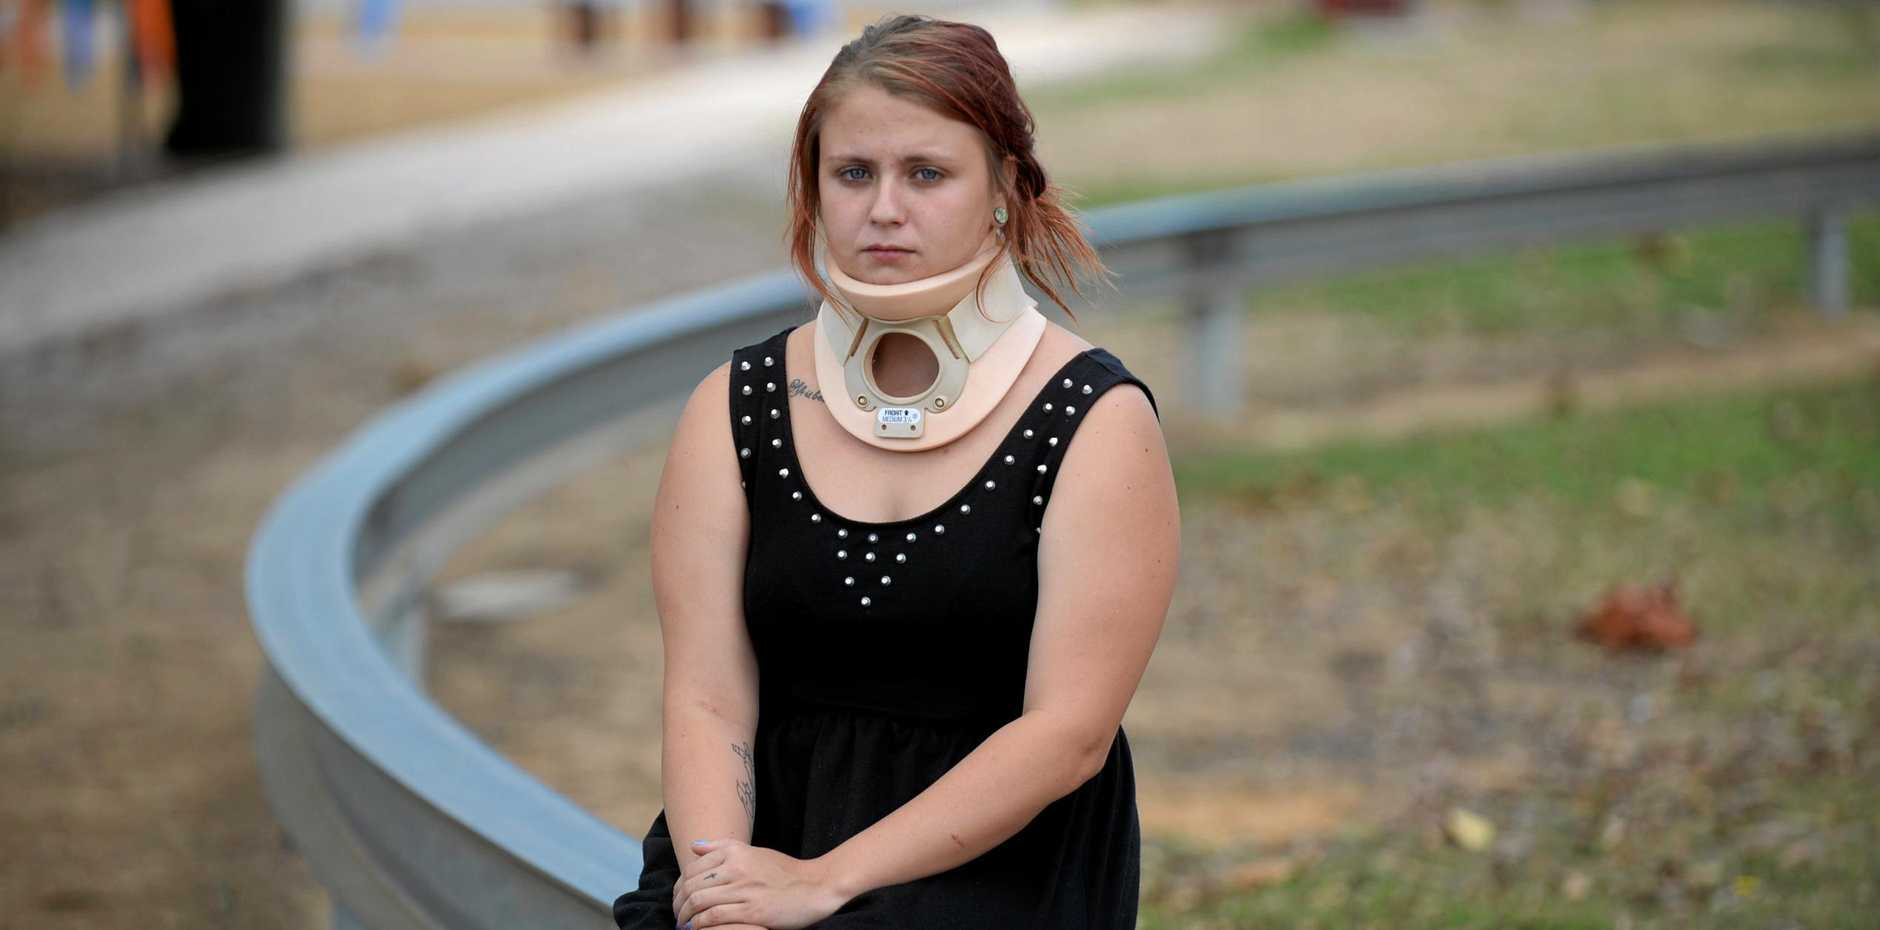 LAWSUIT: The NewsMail reported on Kristina Bishop's fall from the monorail at Boreham Park in 2014.